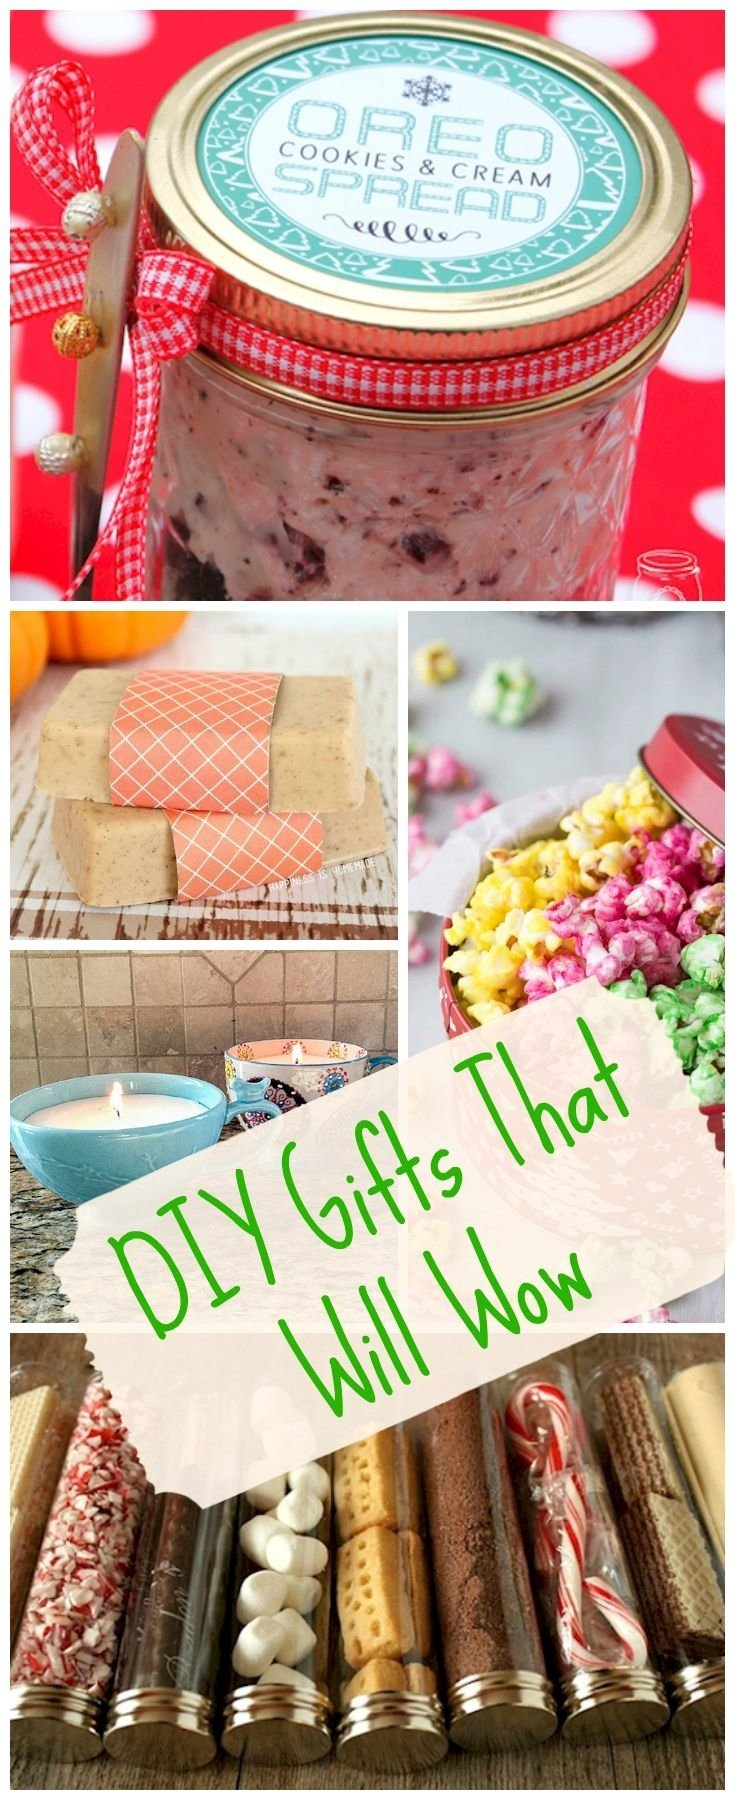 10 Great Homemade Christmas Gift Ideas For Coworkers 35 best gift giving guides images on pinterest bath bombs 1 2021